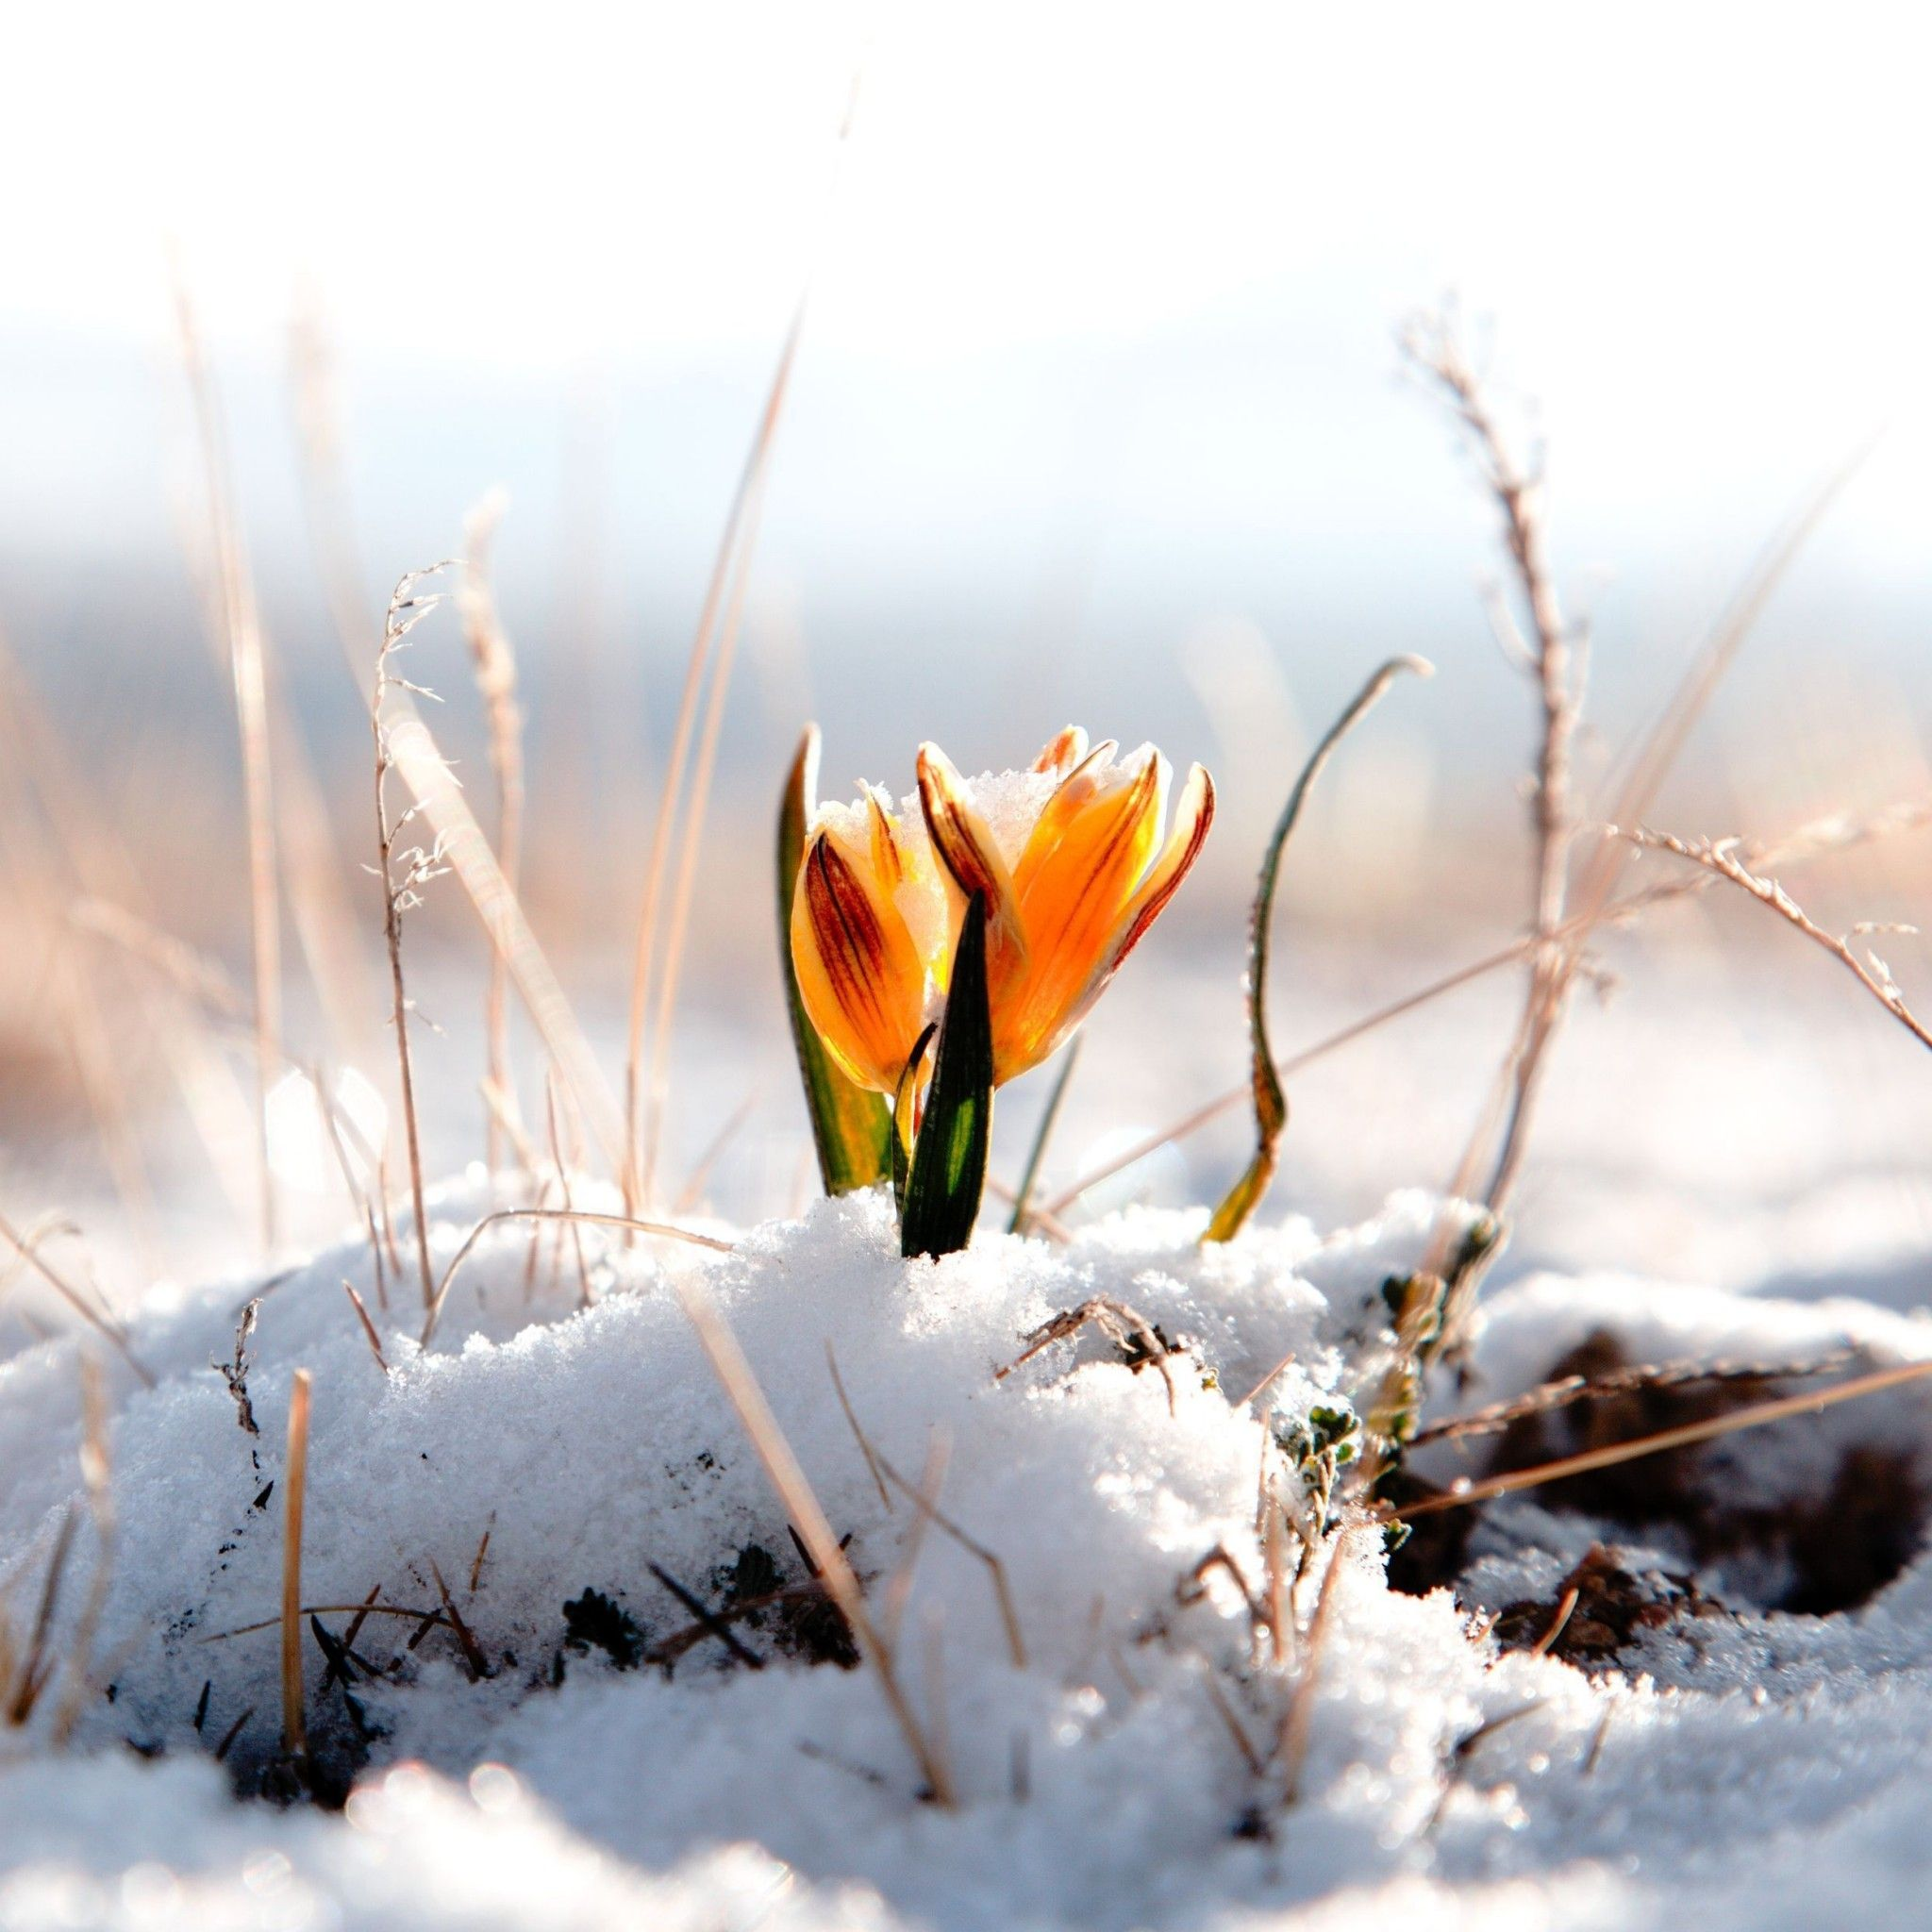 Orange Flower Snow   Tap to see more beautiful Winter snow flowers     Orange Flower Snow   Tap to see more beautiful Winter snow flowers  wallpapers     mobile9